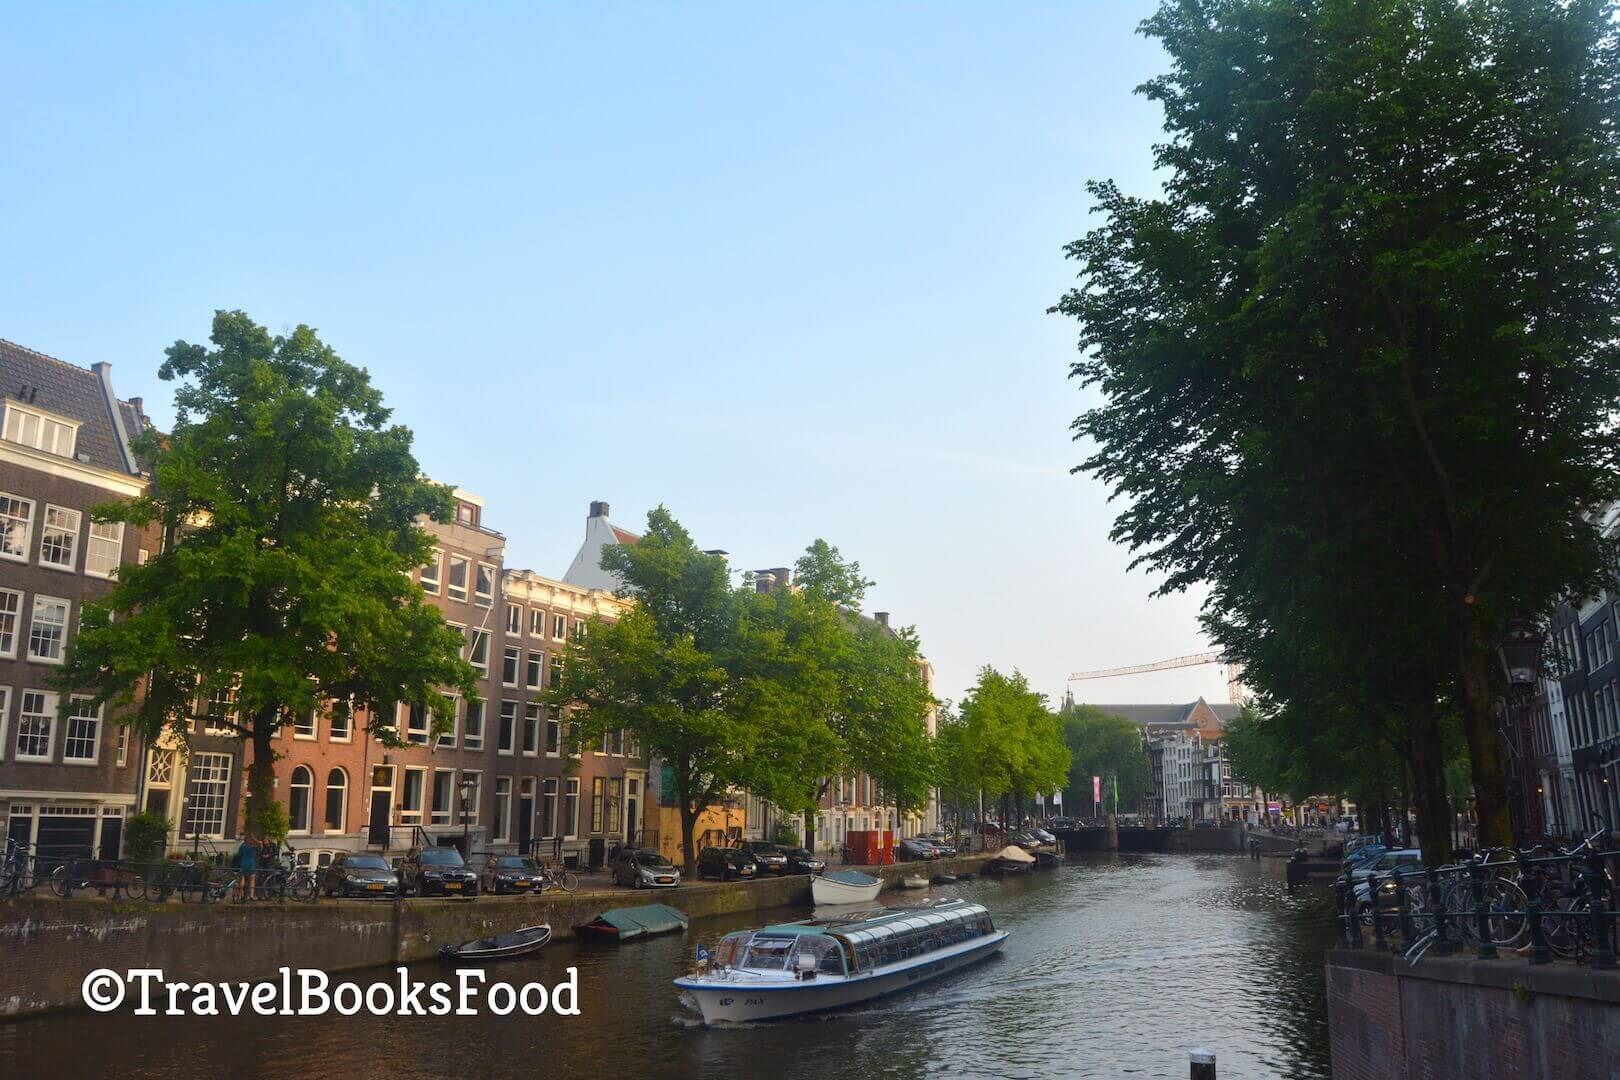 A photo of the famous Amsterdam canals with houses and trees on both sides